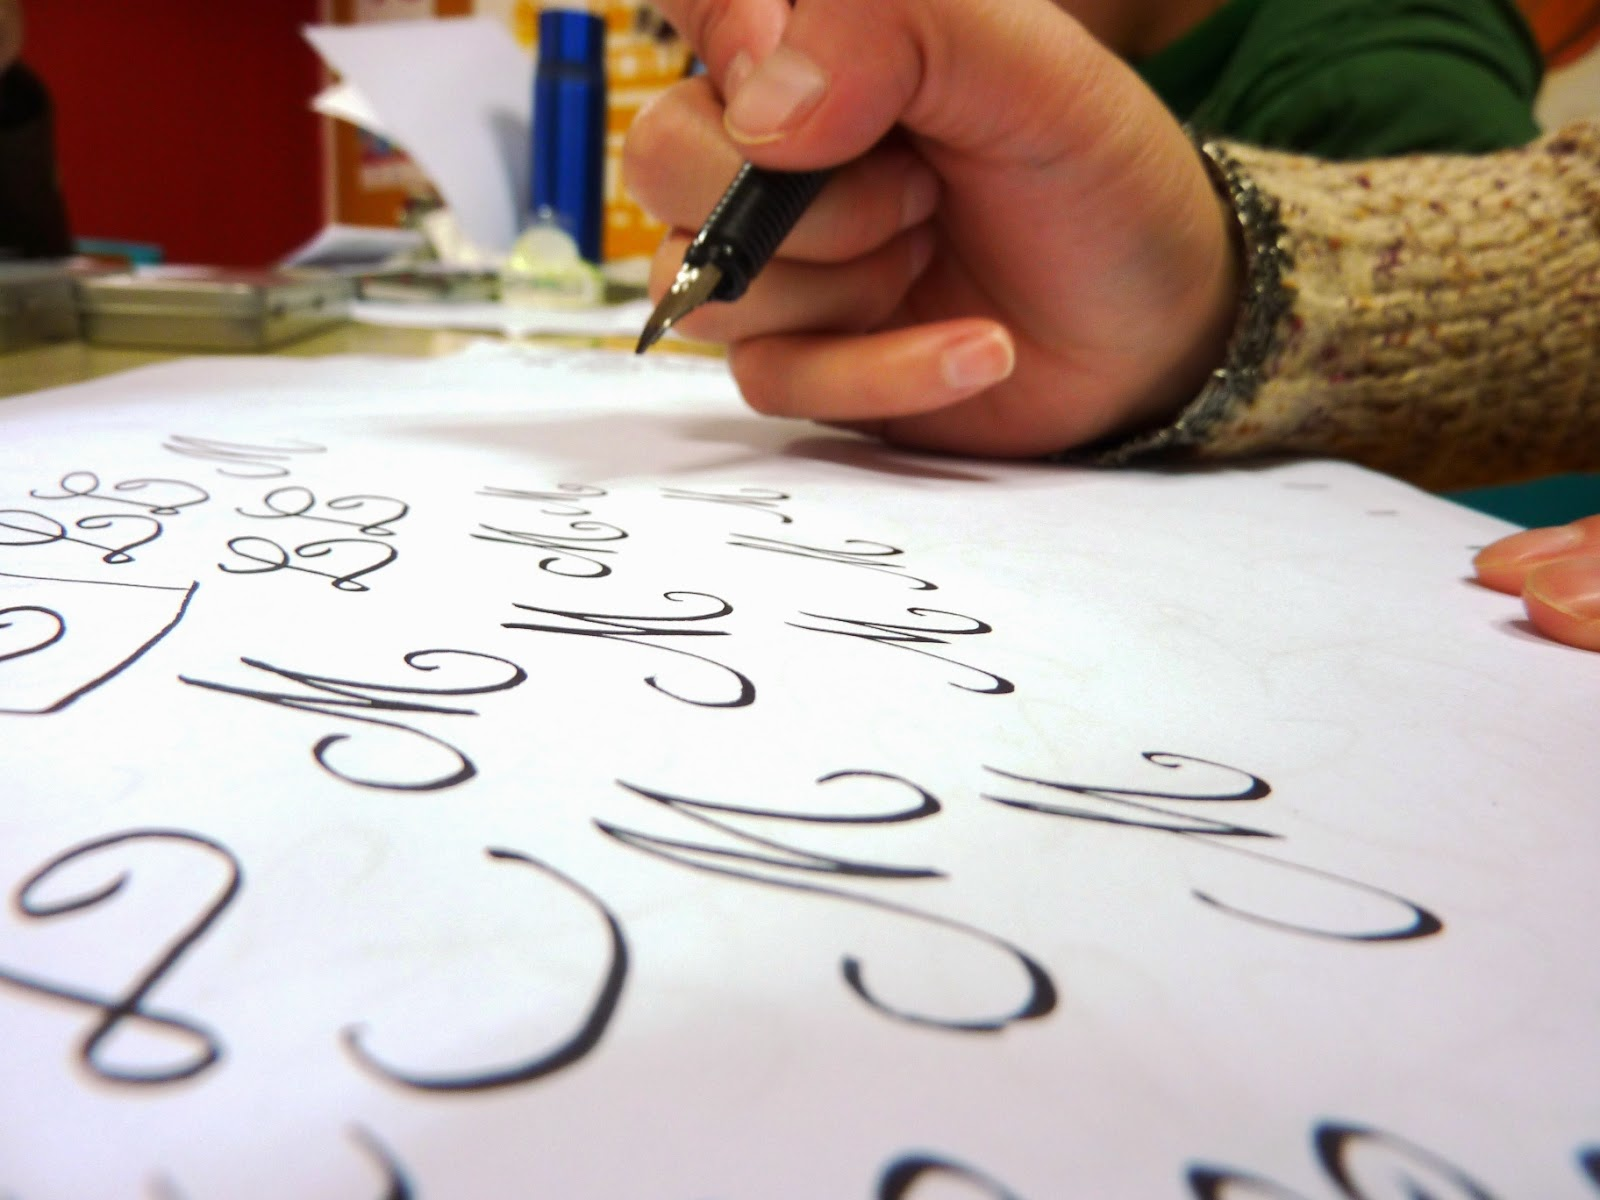 Western calligraphy